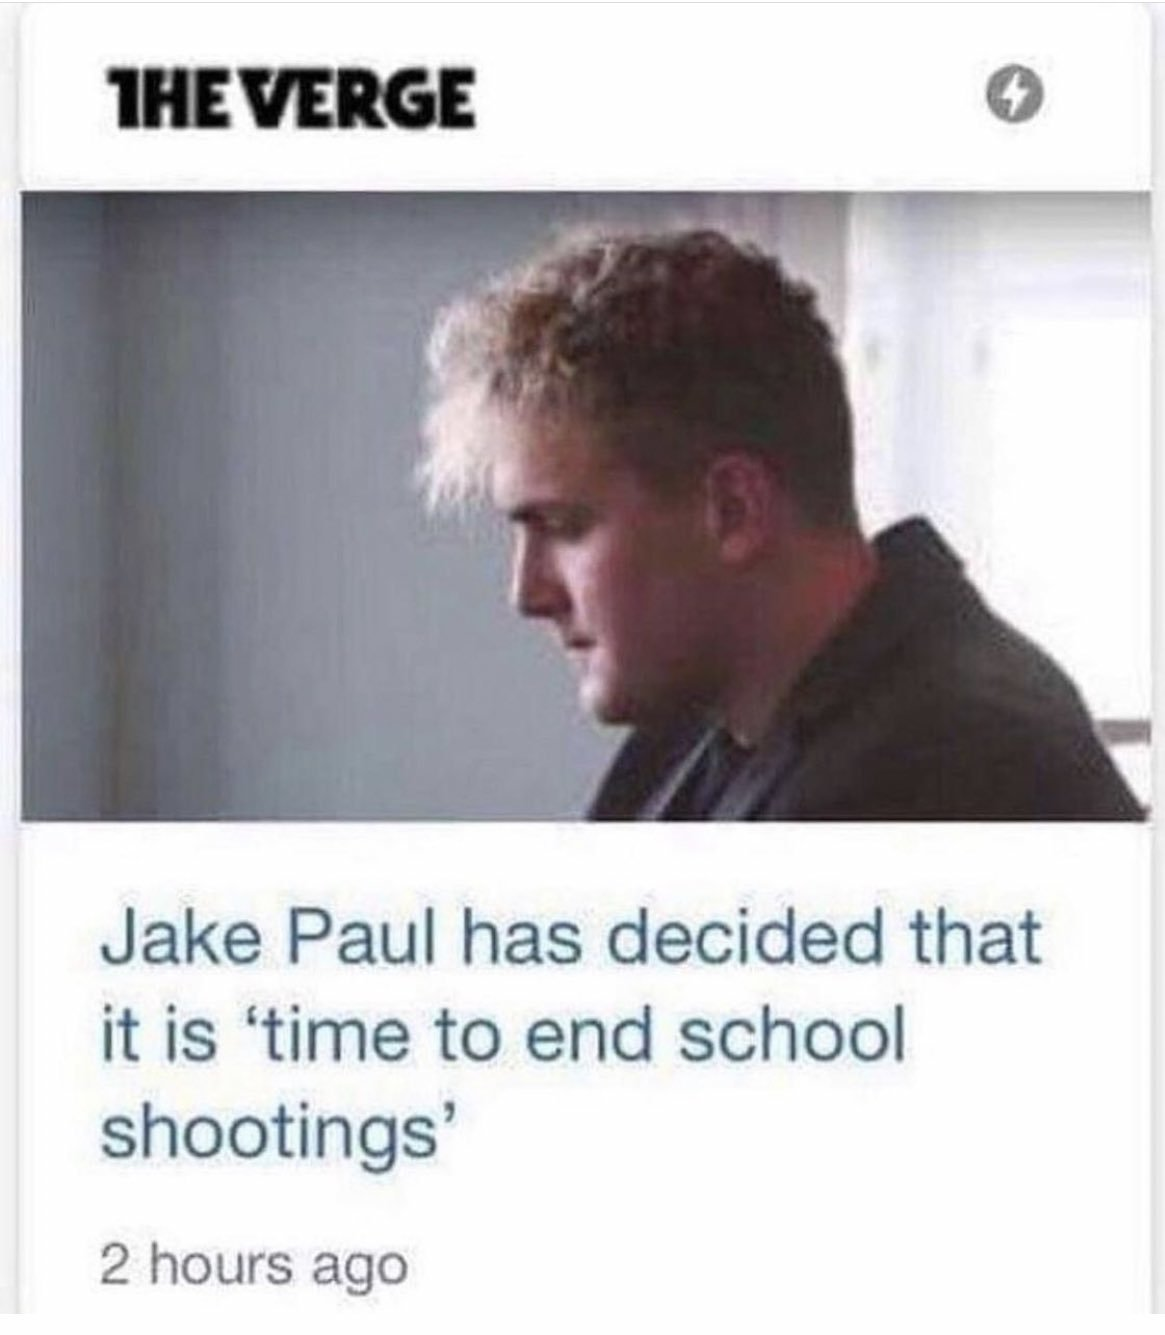 And now school shootings are over. Than you Jake Paul, for your decision - meme